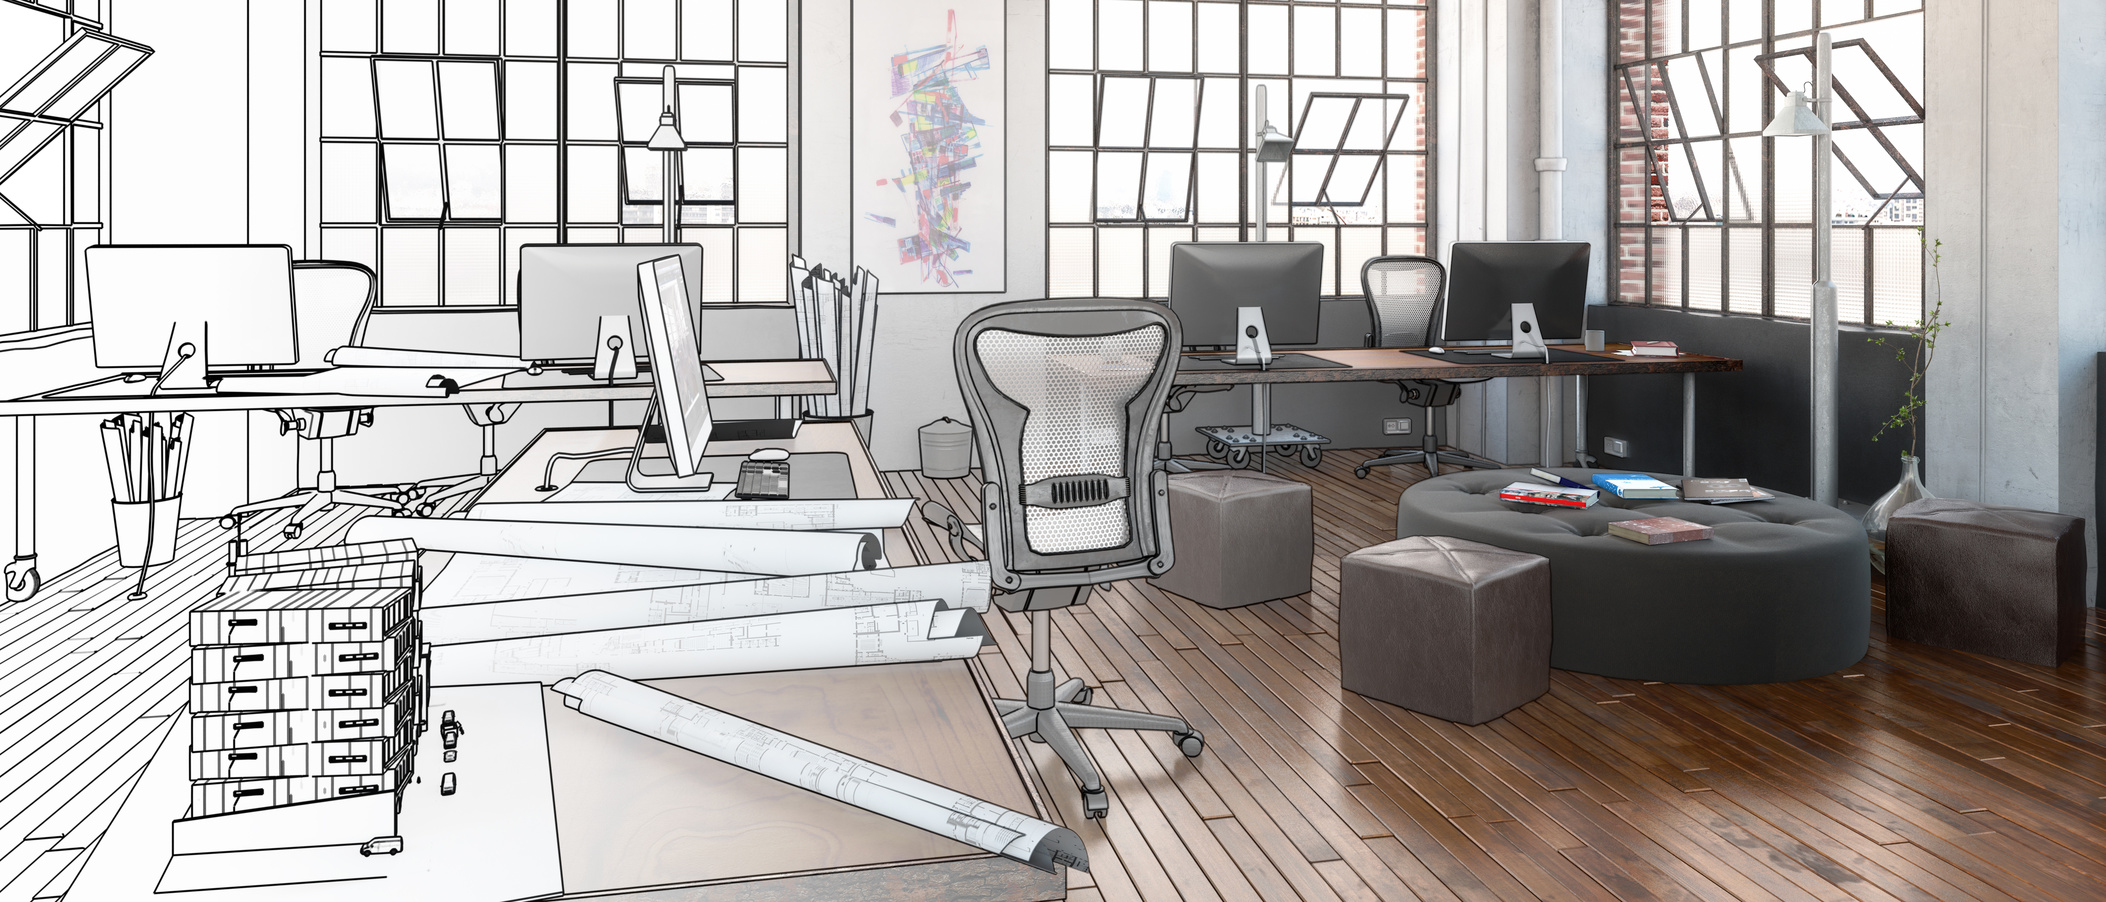 Postindustrial Office Design in Project (panoramic)